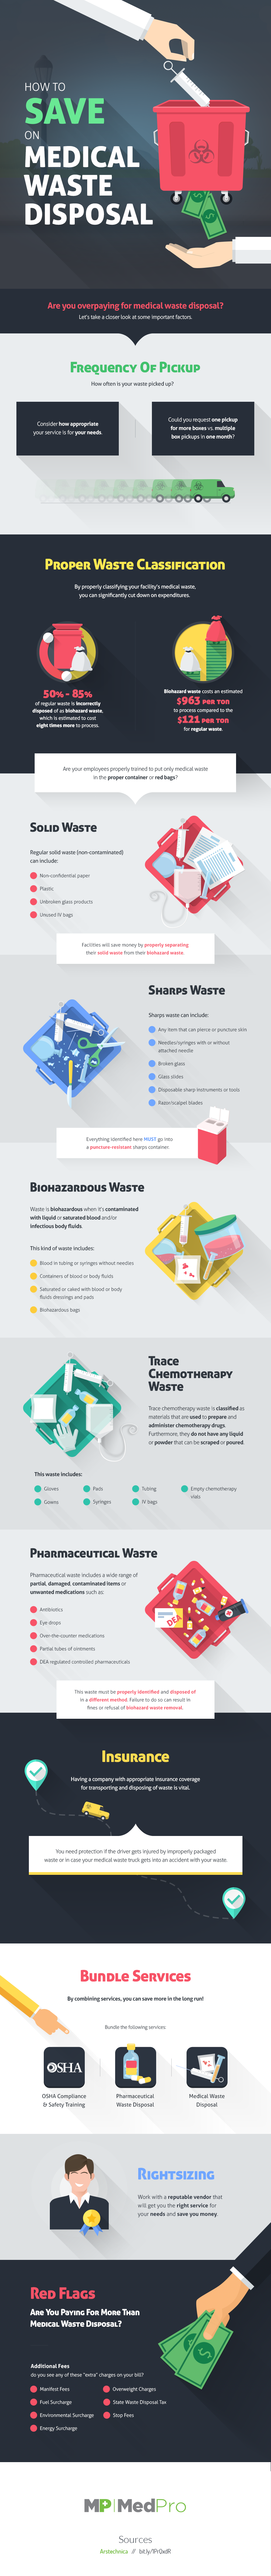 How to Save on Medical Waste Disposal